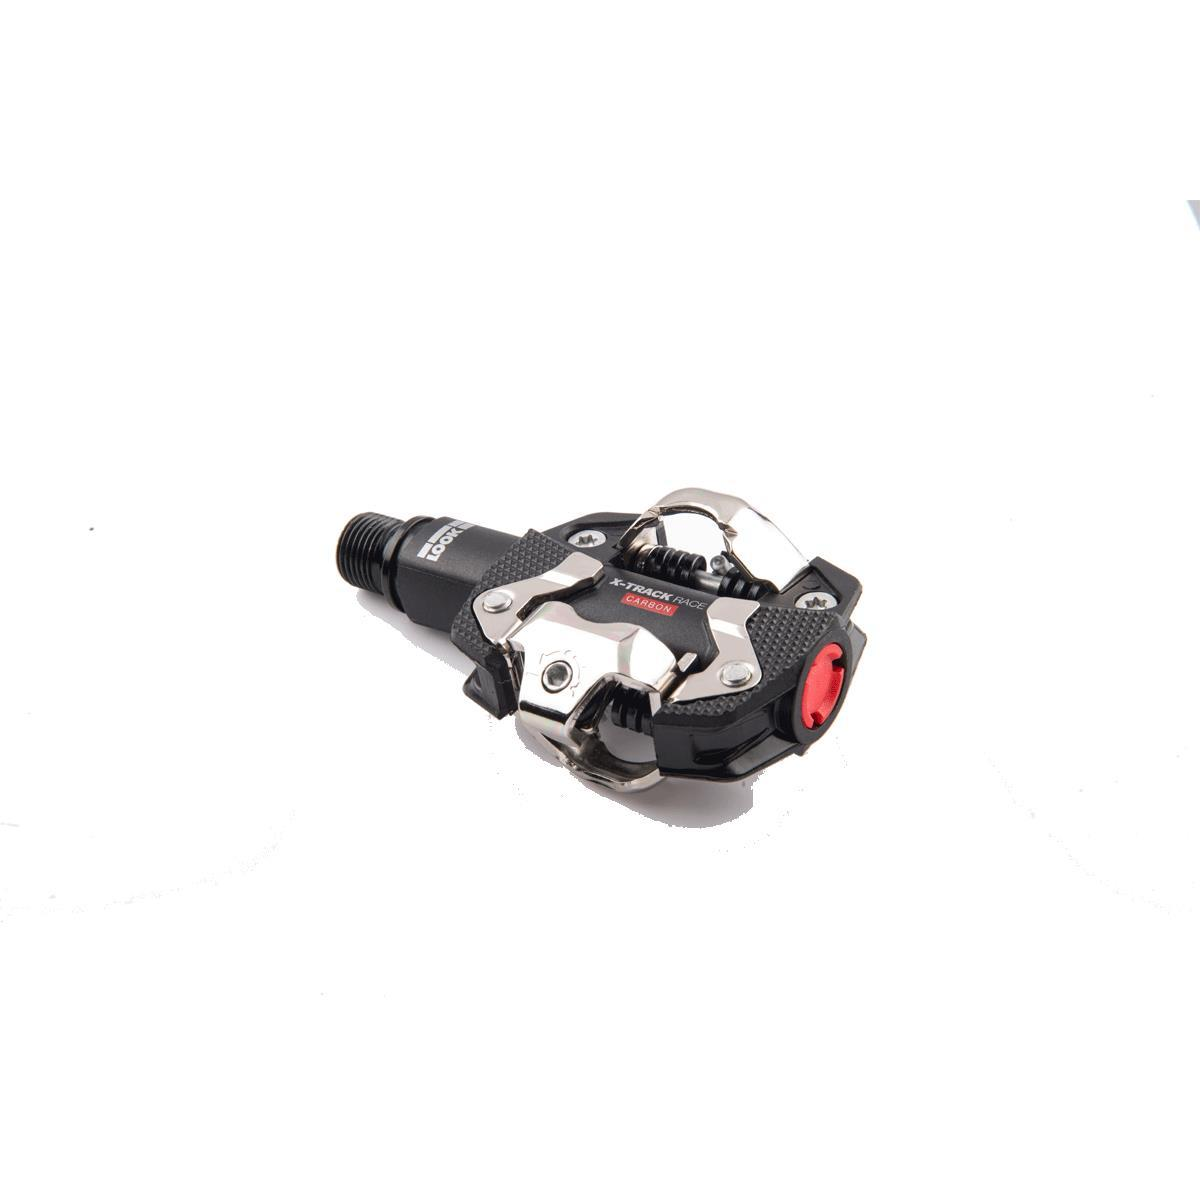 Look S-Track Carbon Ti Right Pedal Axle and Bearing Assembly